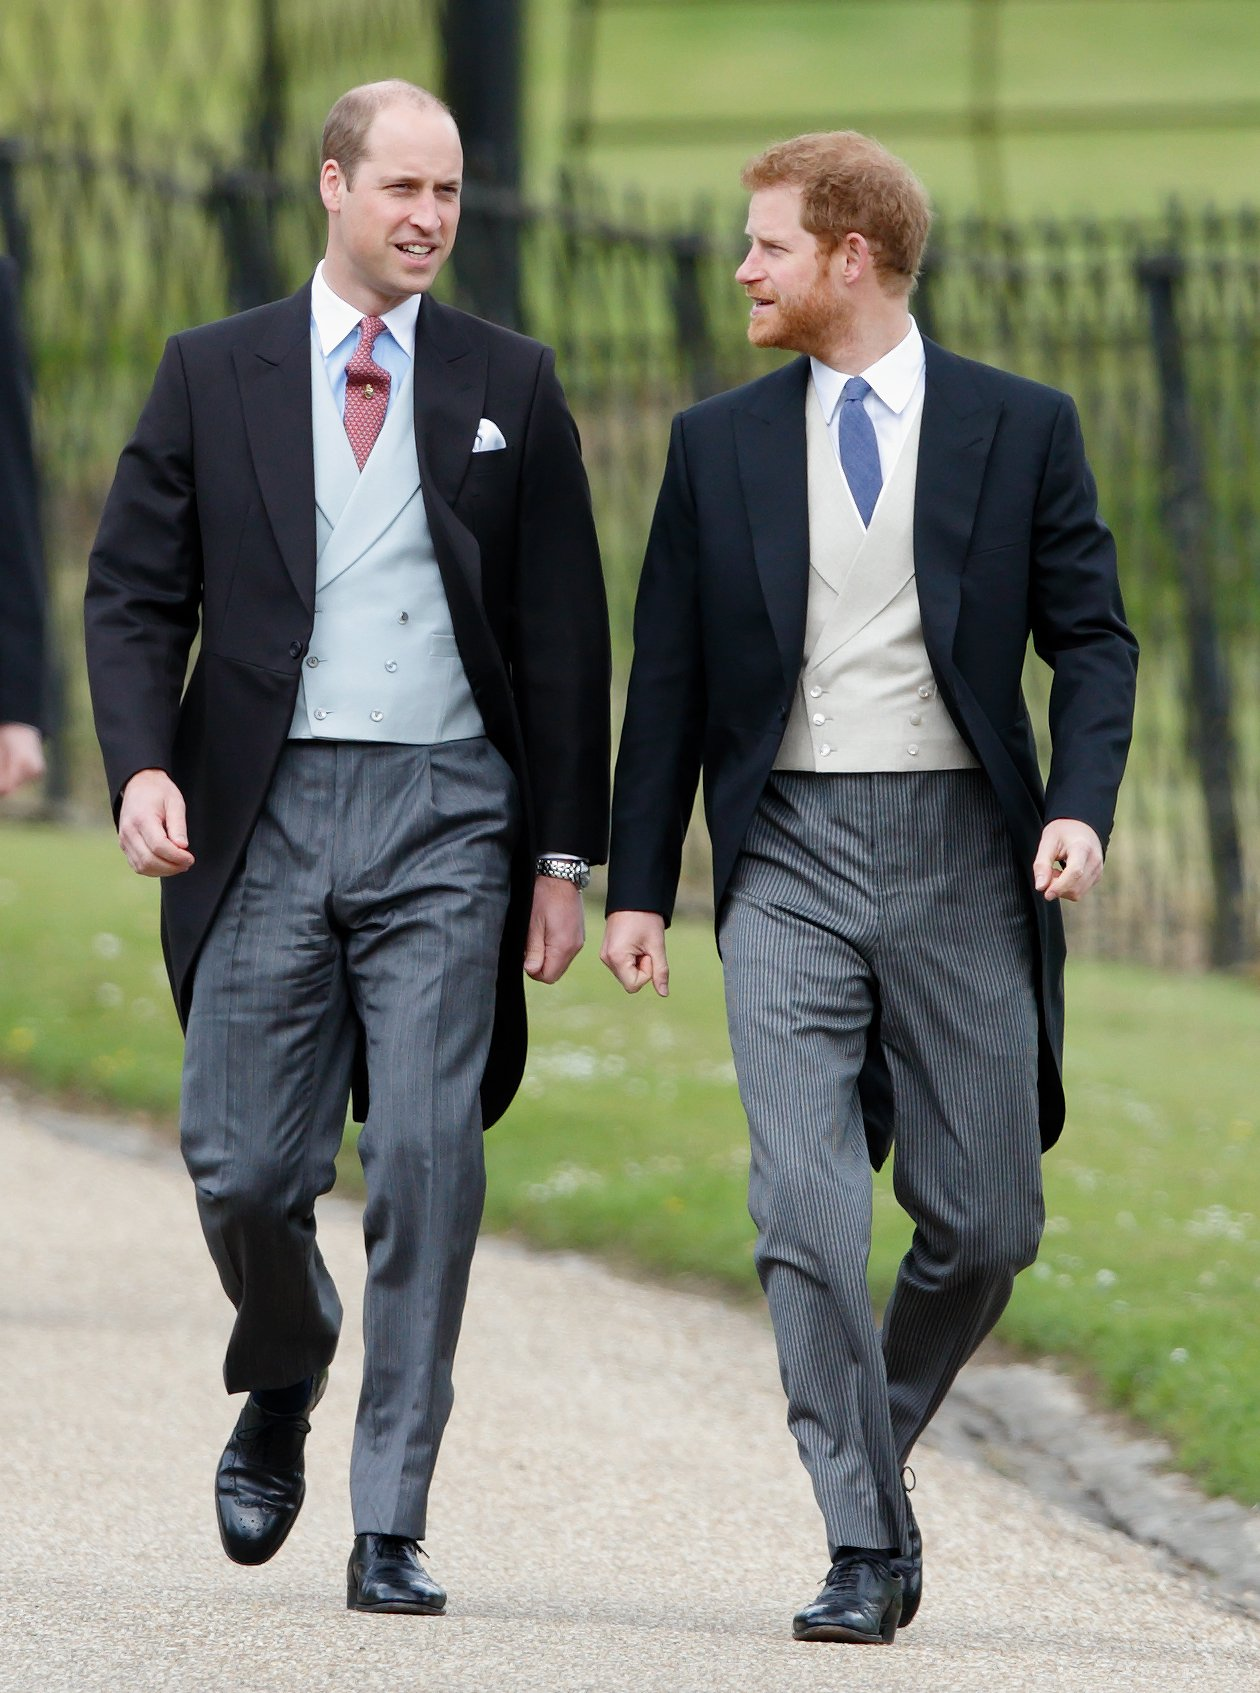 Prince William and Prince Harry attend Pippa Middleton and James Matthews' wedding in Englefield Green, England on May 20, 2017 | Photo: Getty Images